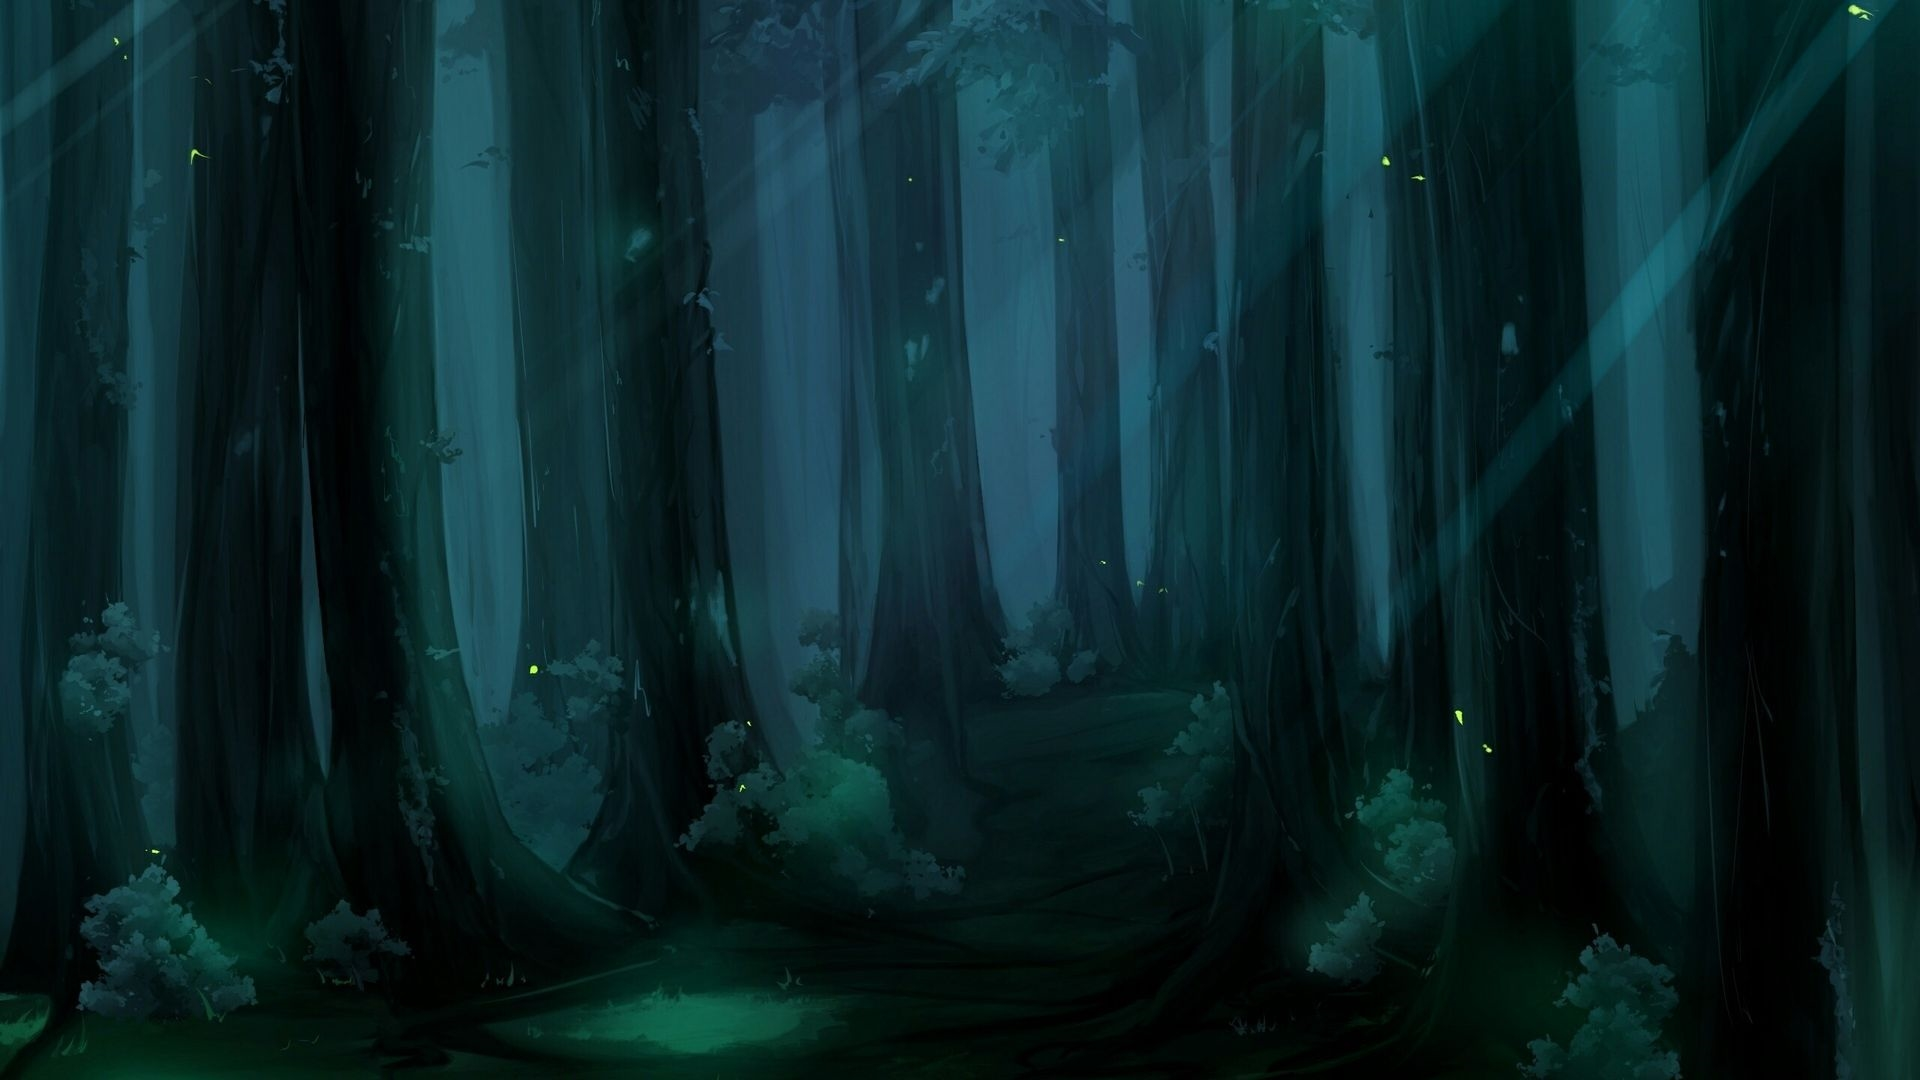 Anime Forest Cool HD Wallpaper